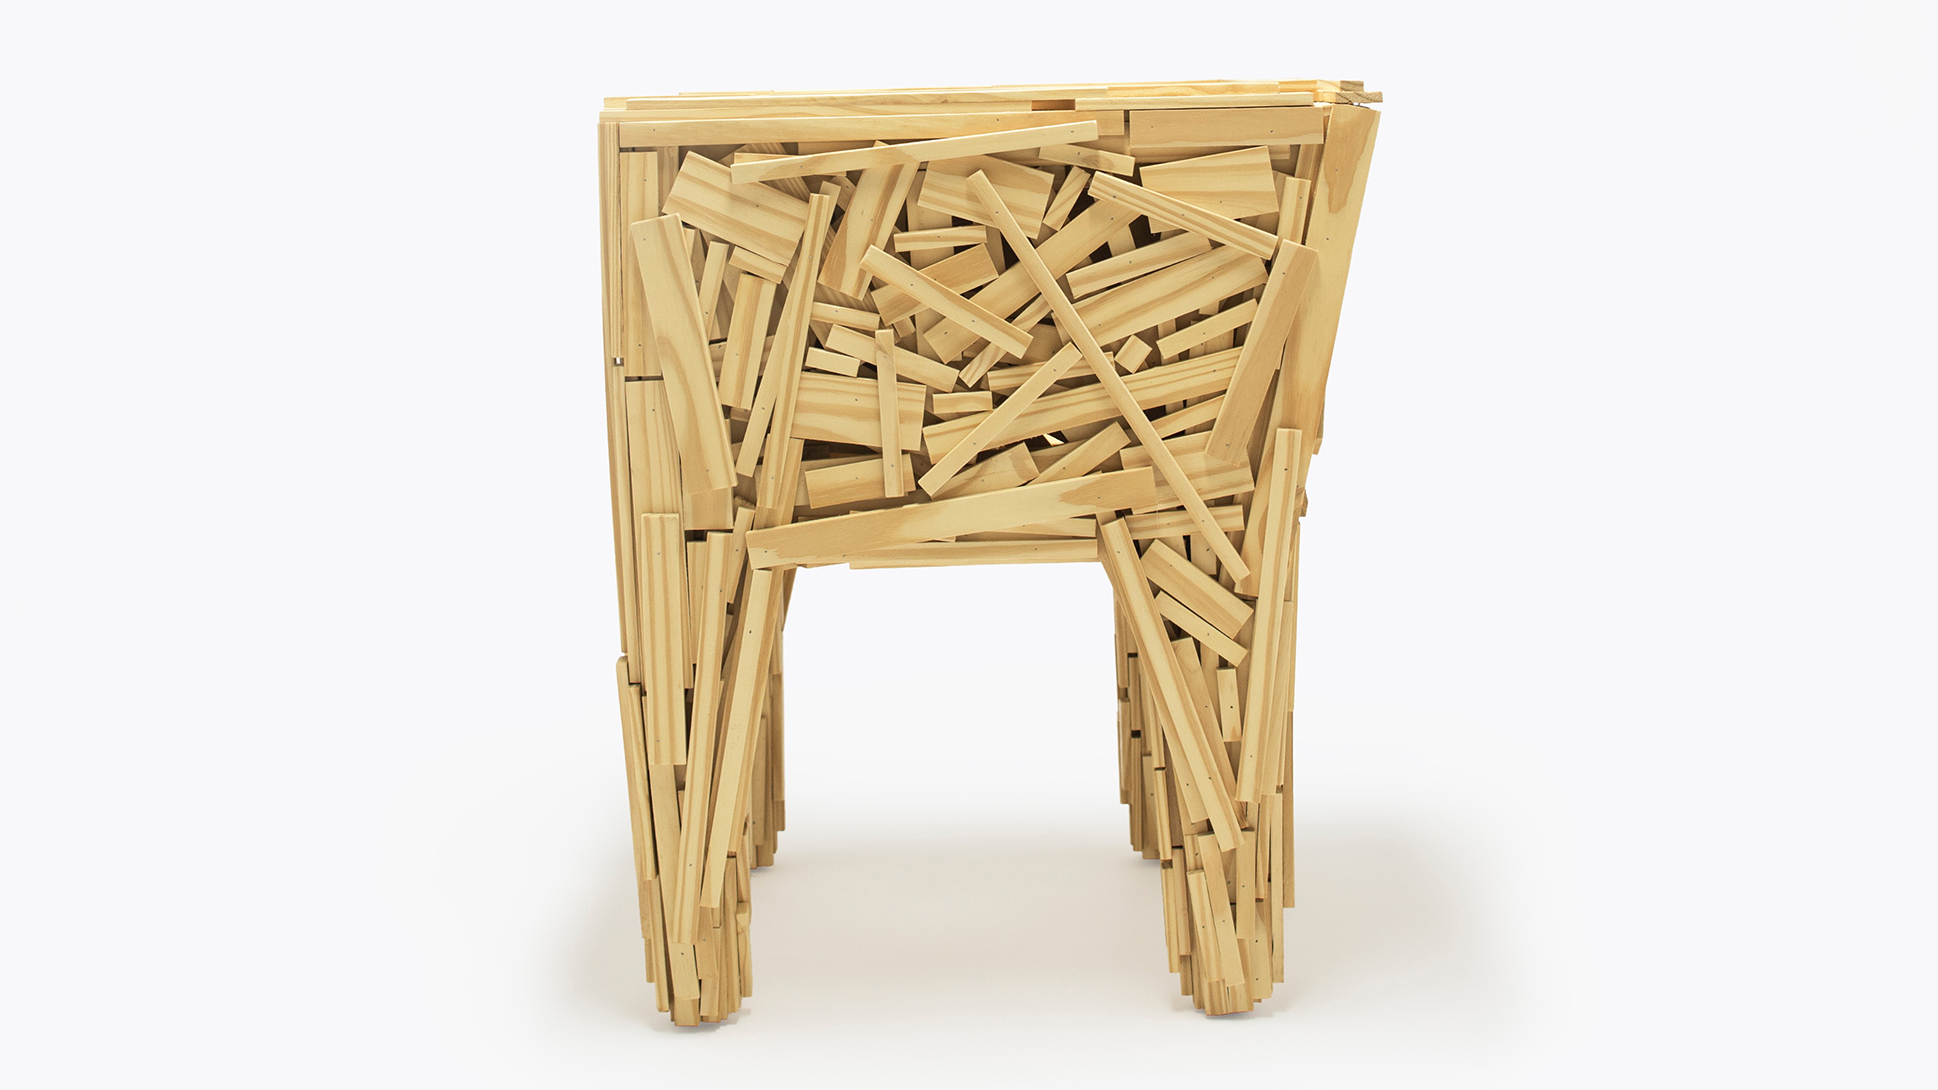 Favela chair by Campana brothers